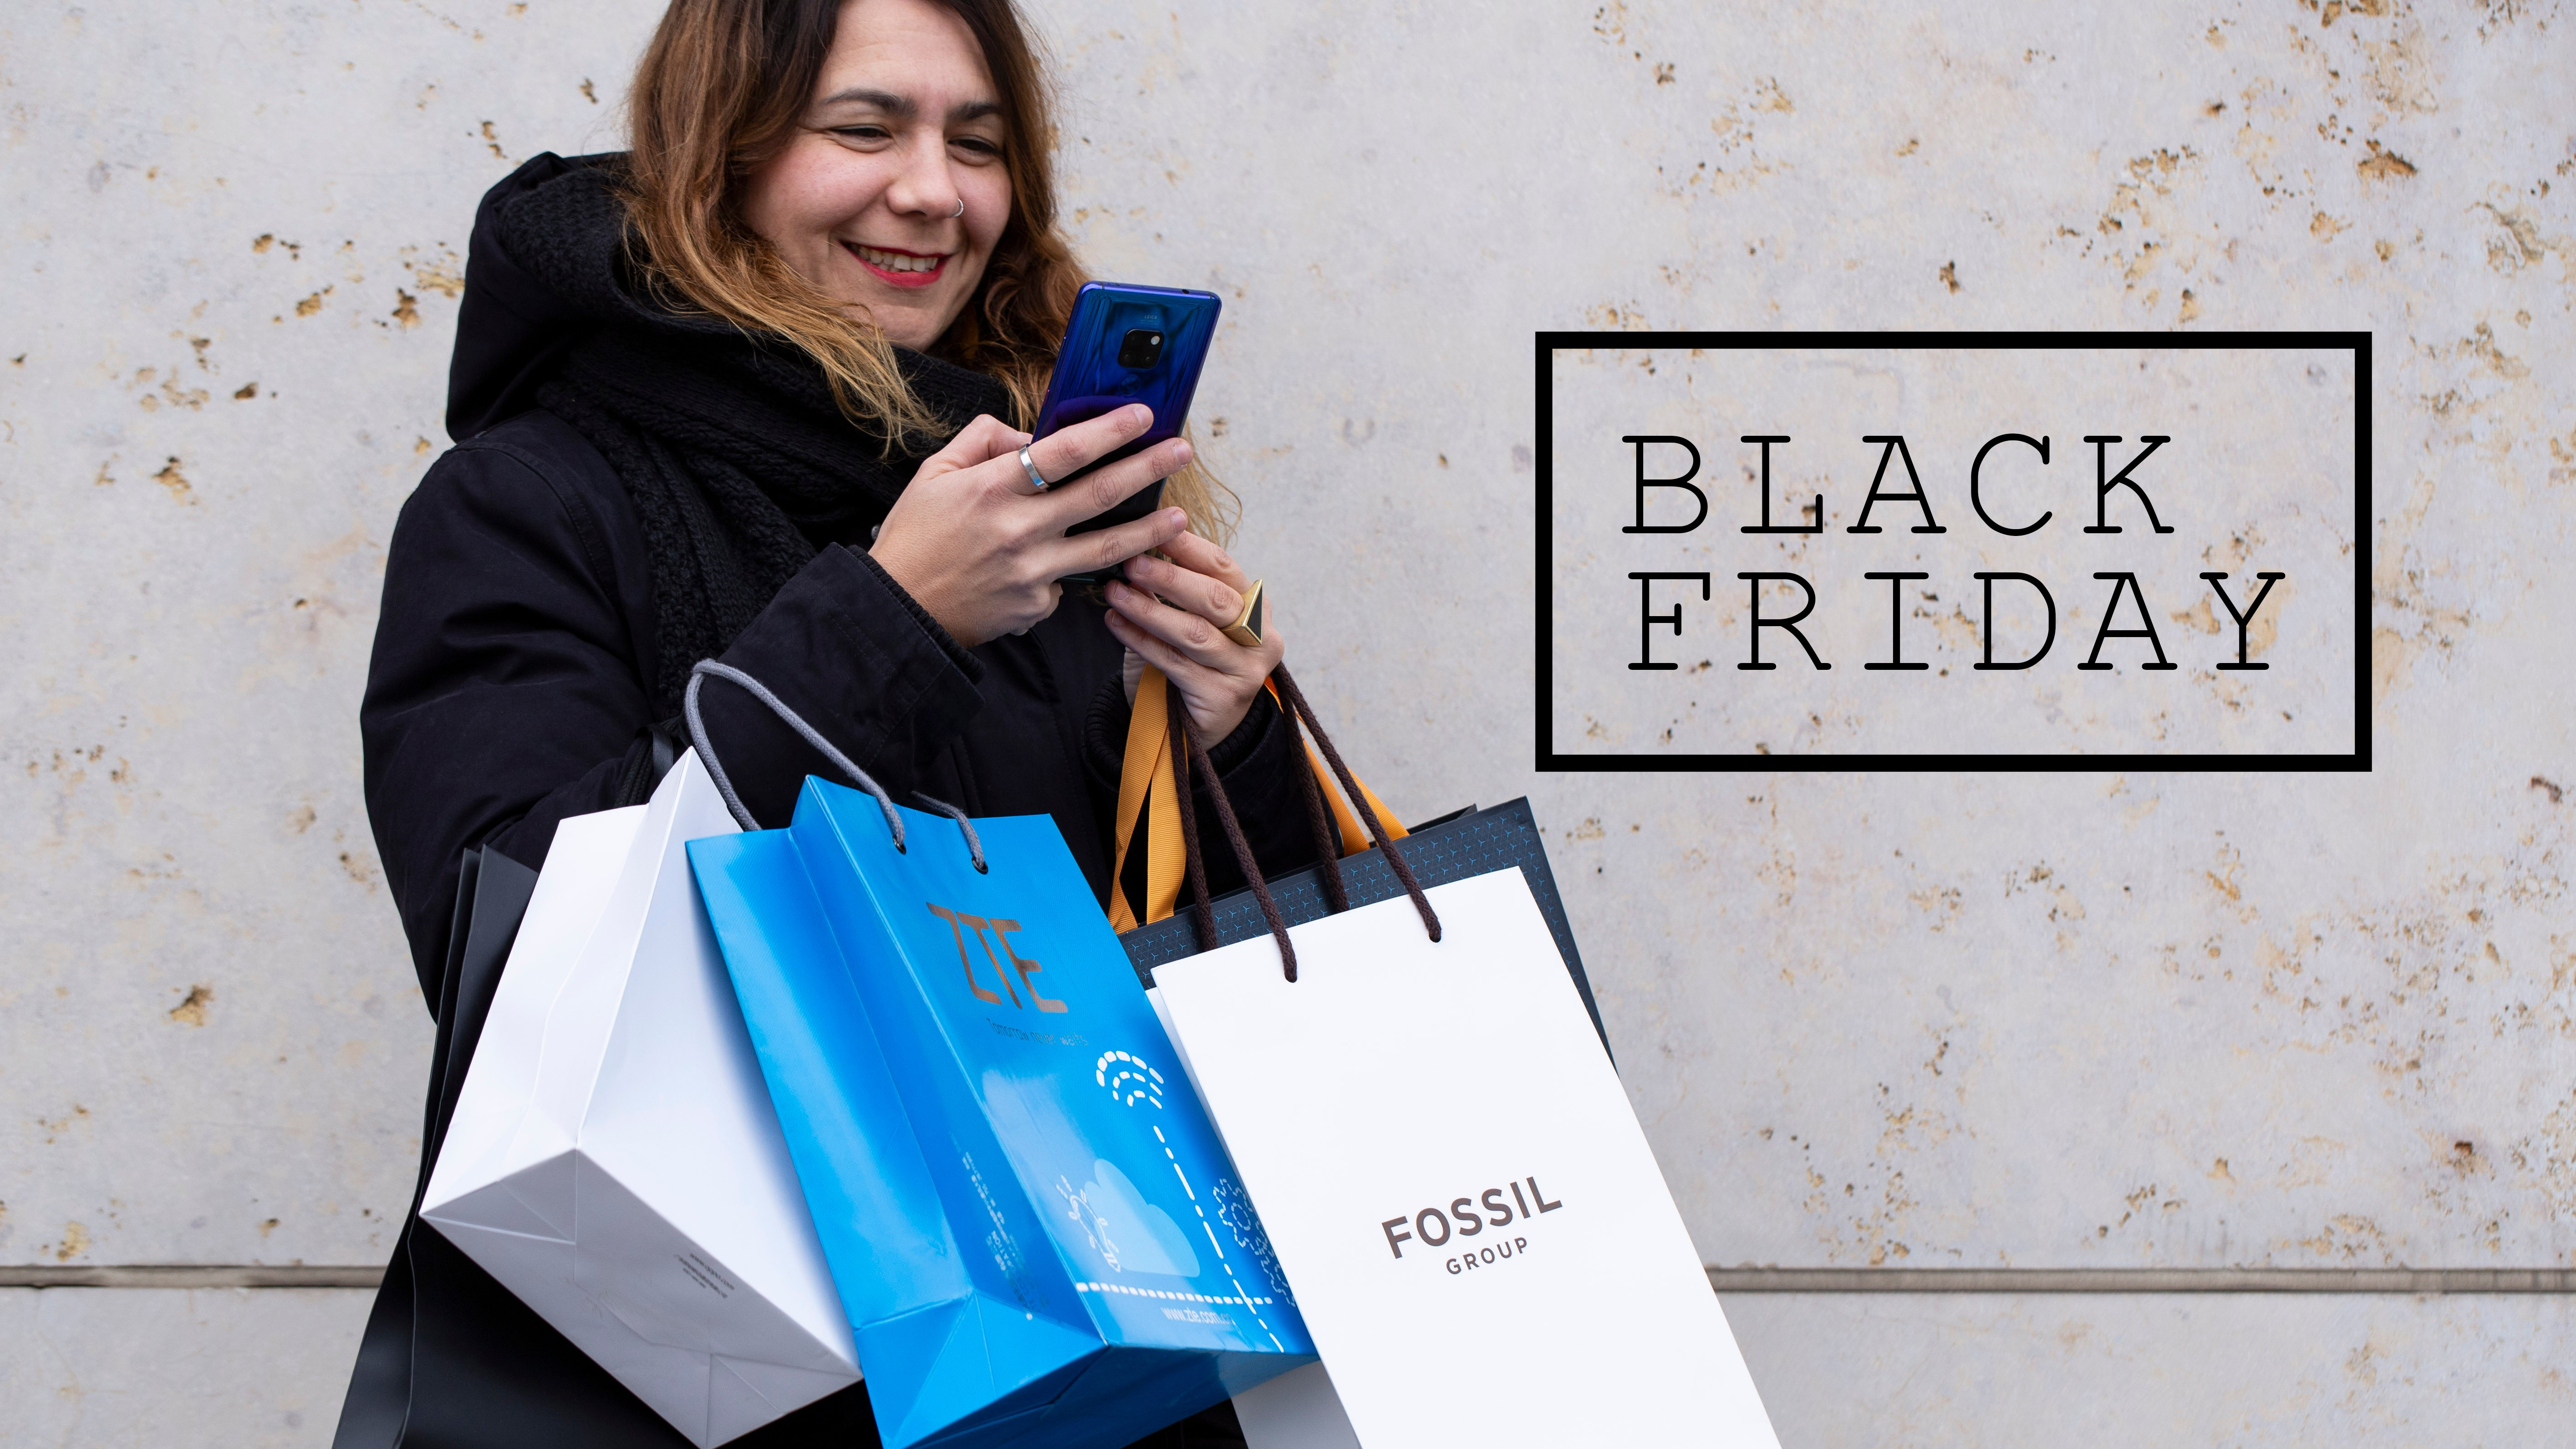 Black Friday Top Deals Black Friday 2018 The Top Tech Deals This Fall Androidpit